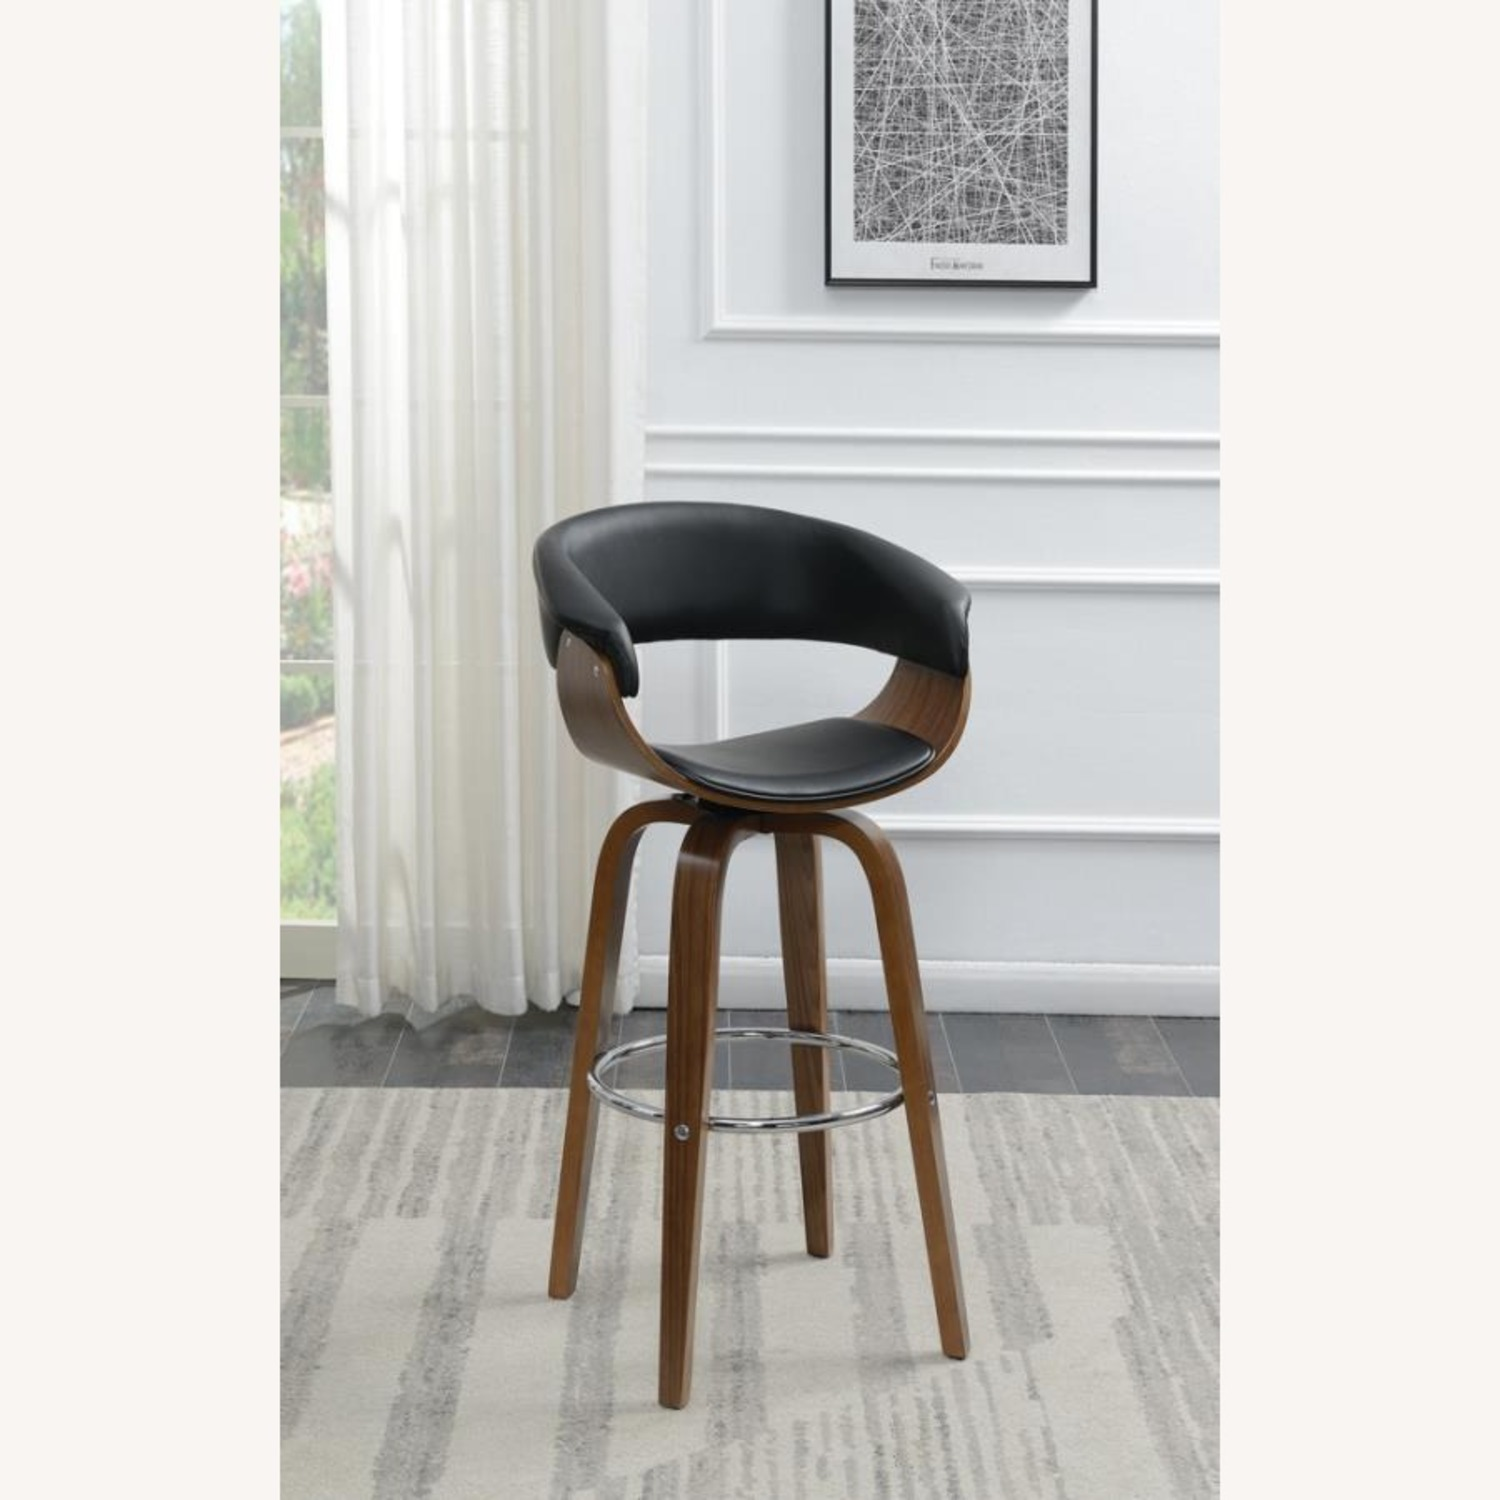 Swivel Bar Stool In Black Faux Leather Upholstery - image-6